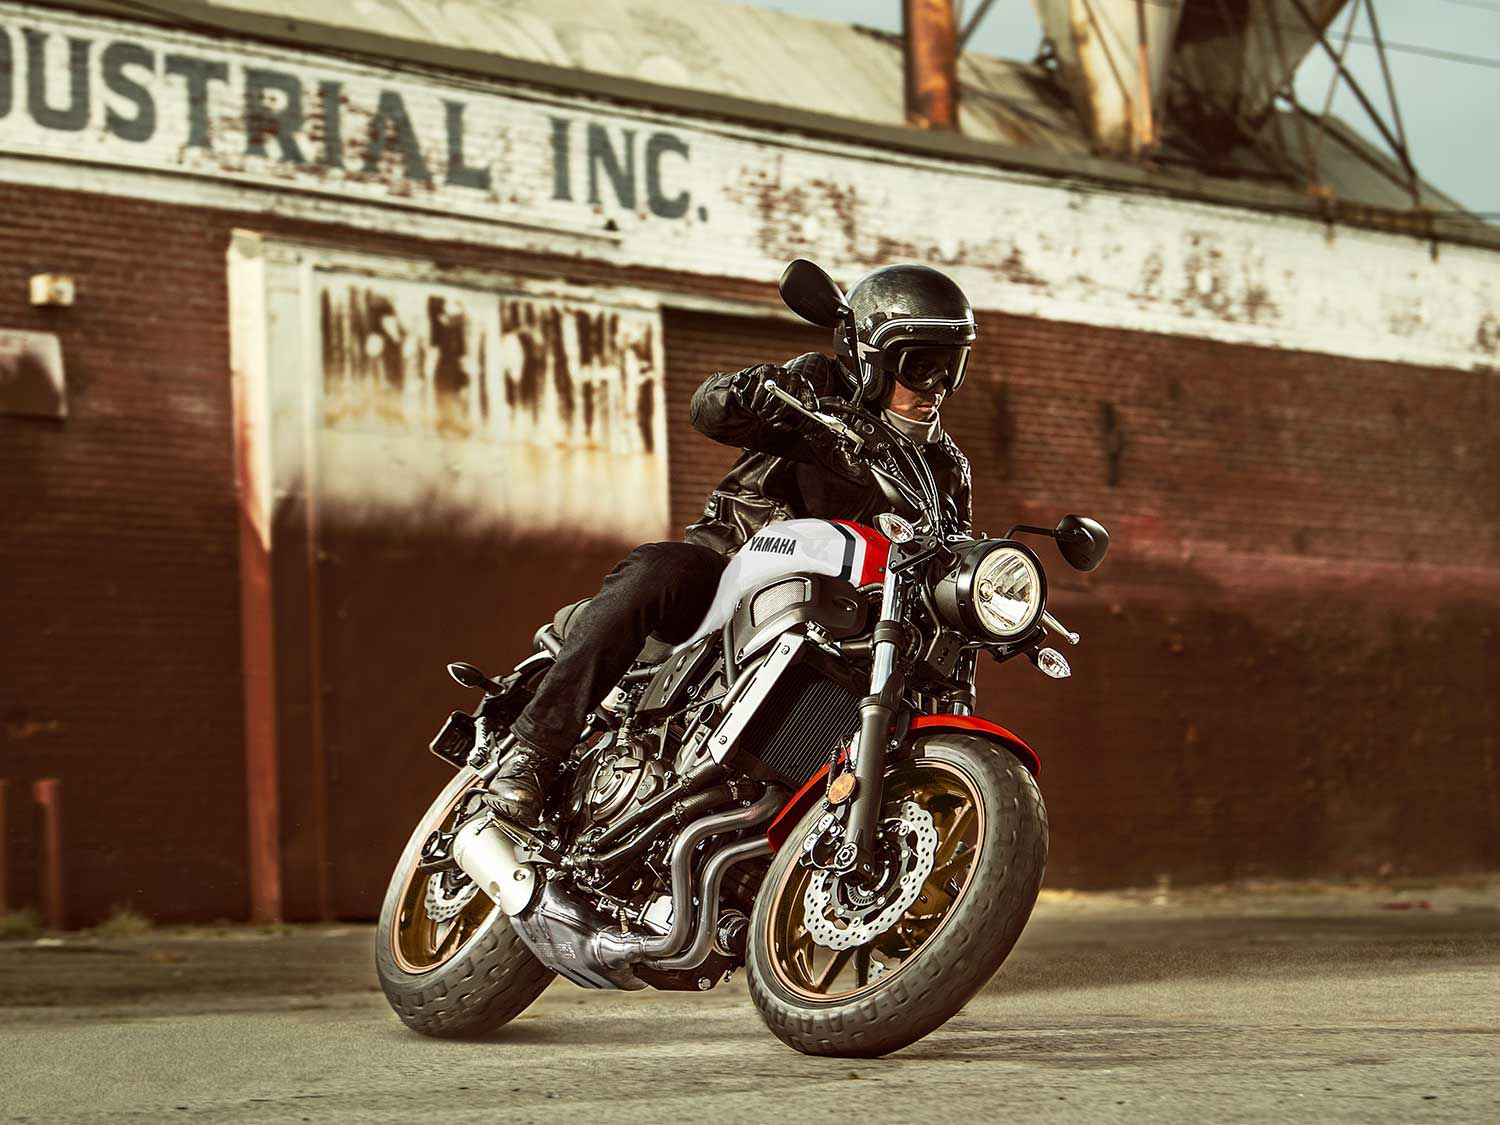 A 41mm conventional front end with 5.1 inches of travel and 3.5 inches of trail makes for a nimble wheelbase that's over an inch shorter than the XSR900.